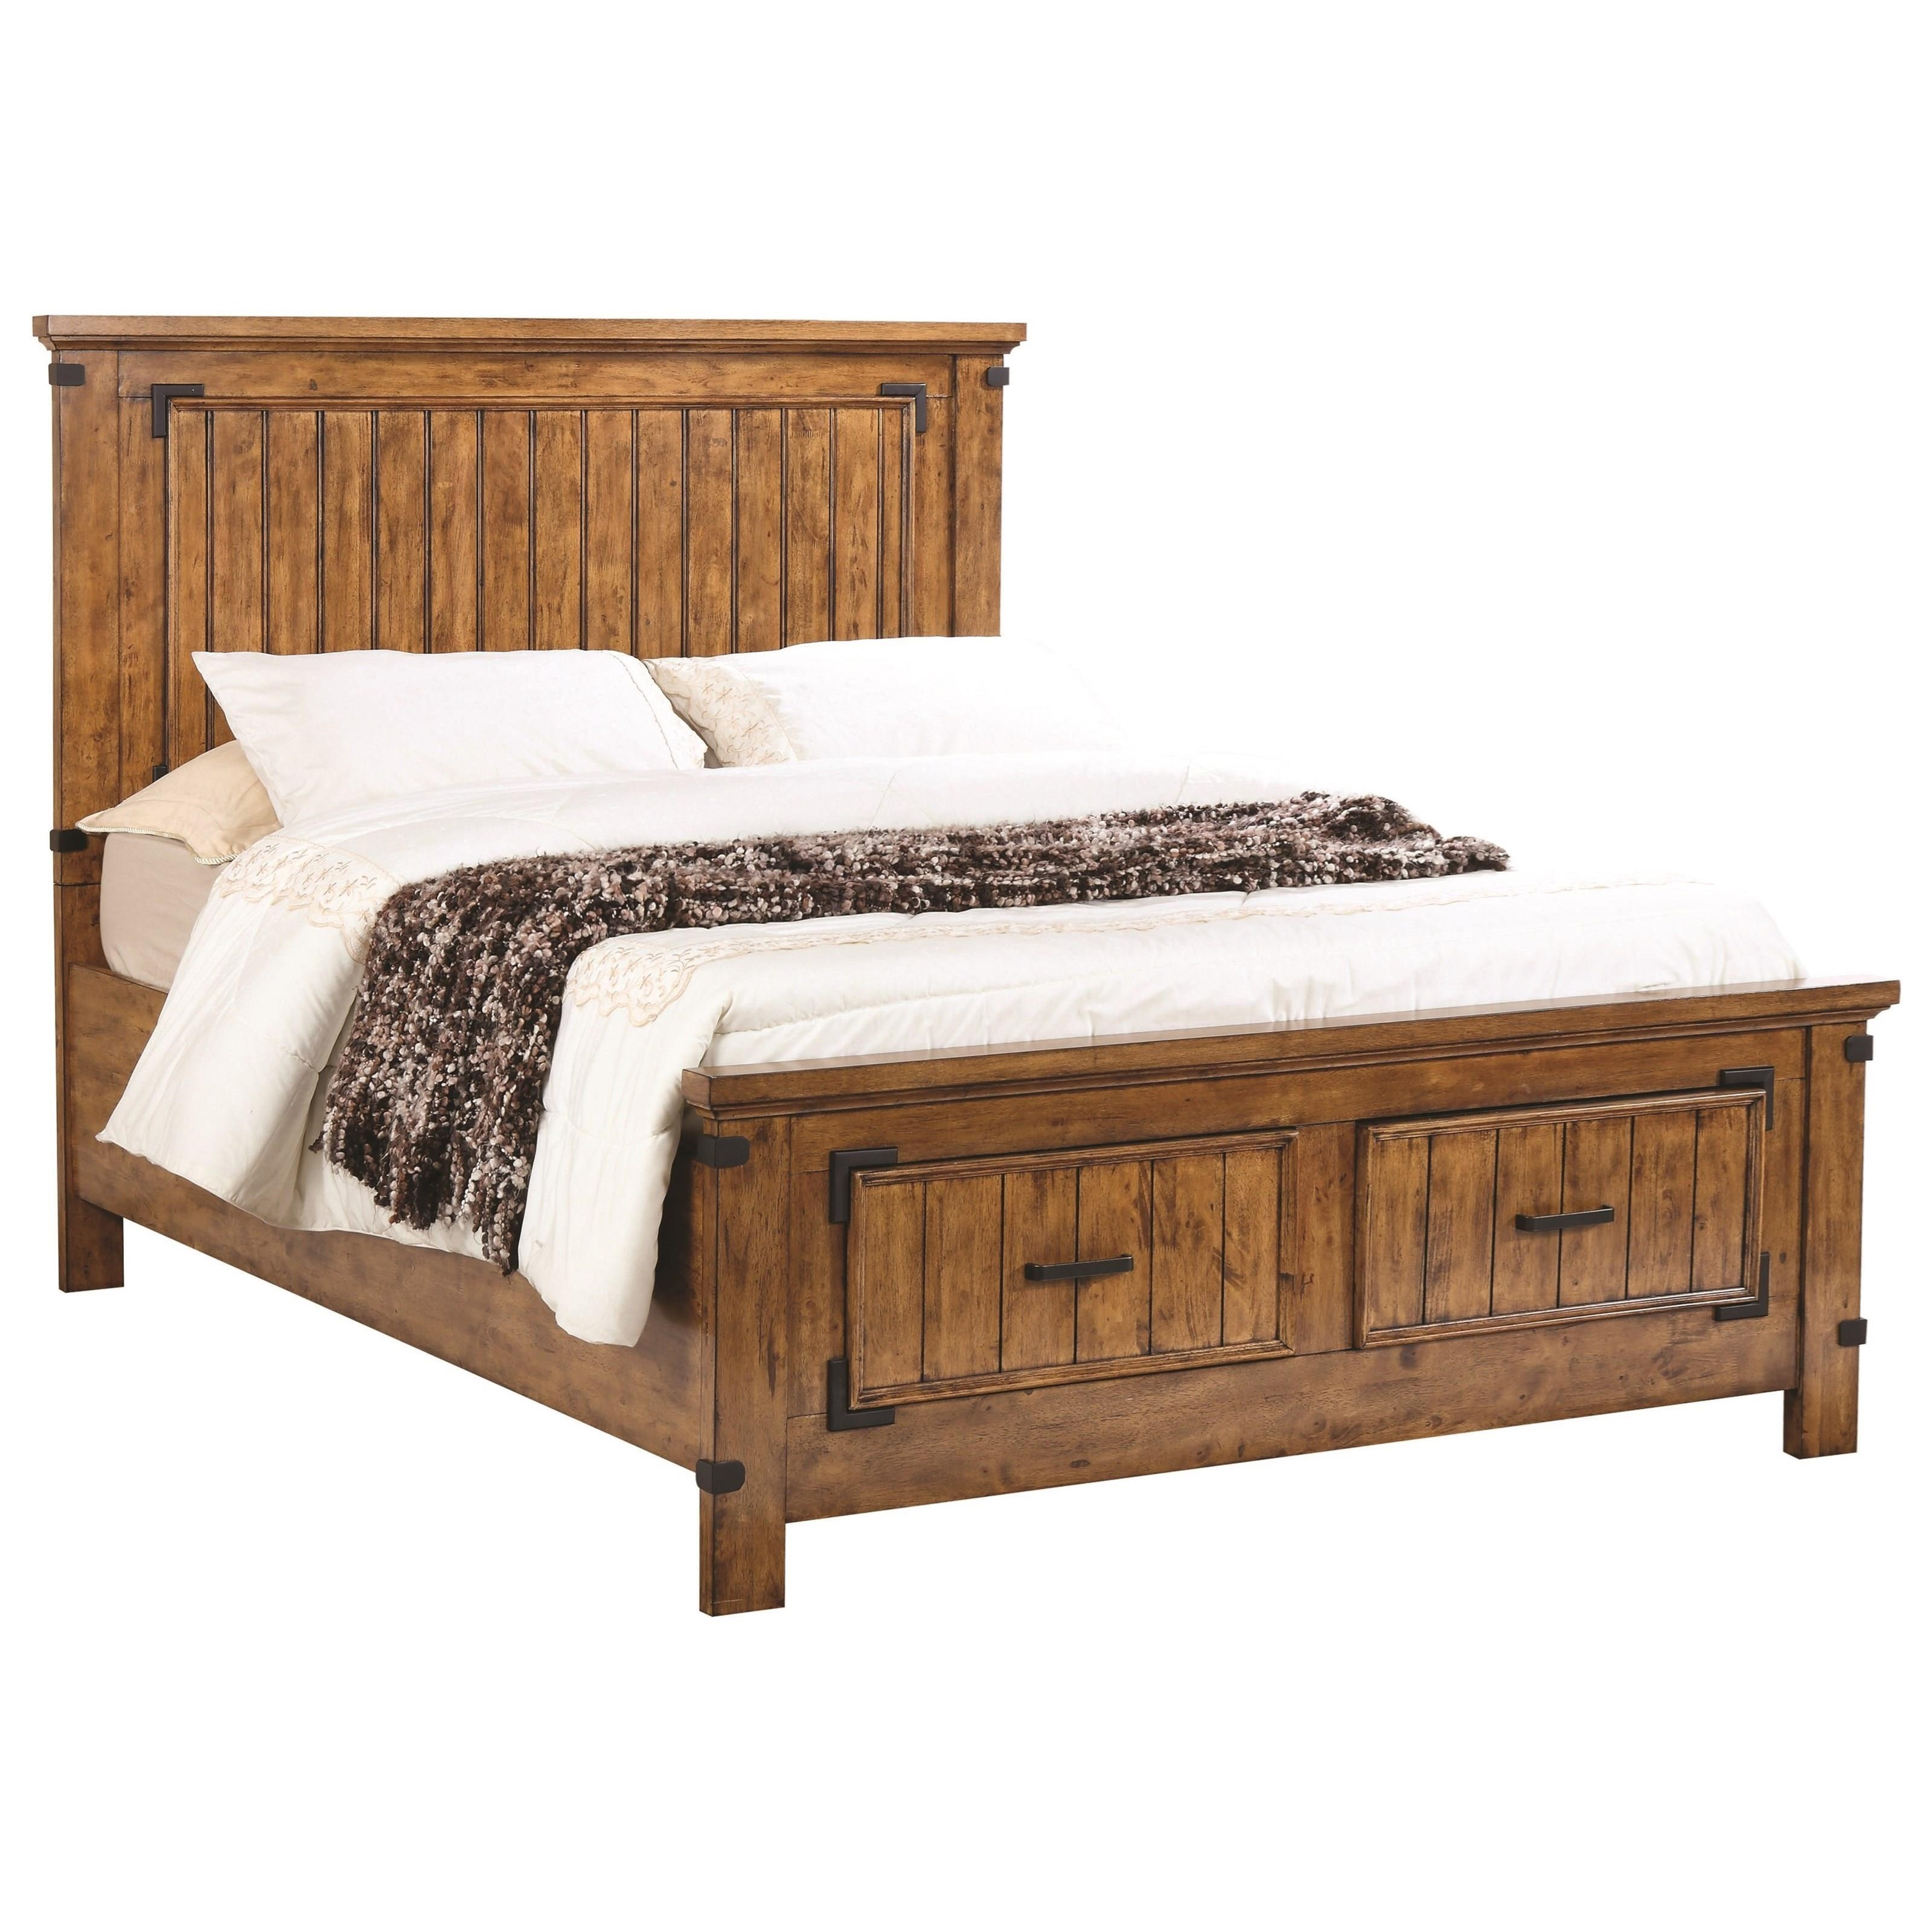 King Storage Bed with Dovetail Drawers